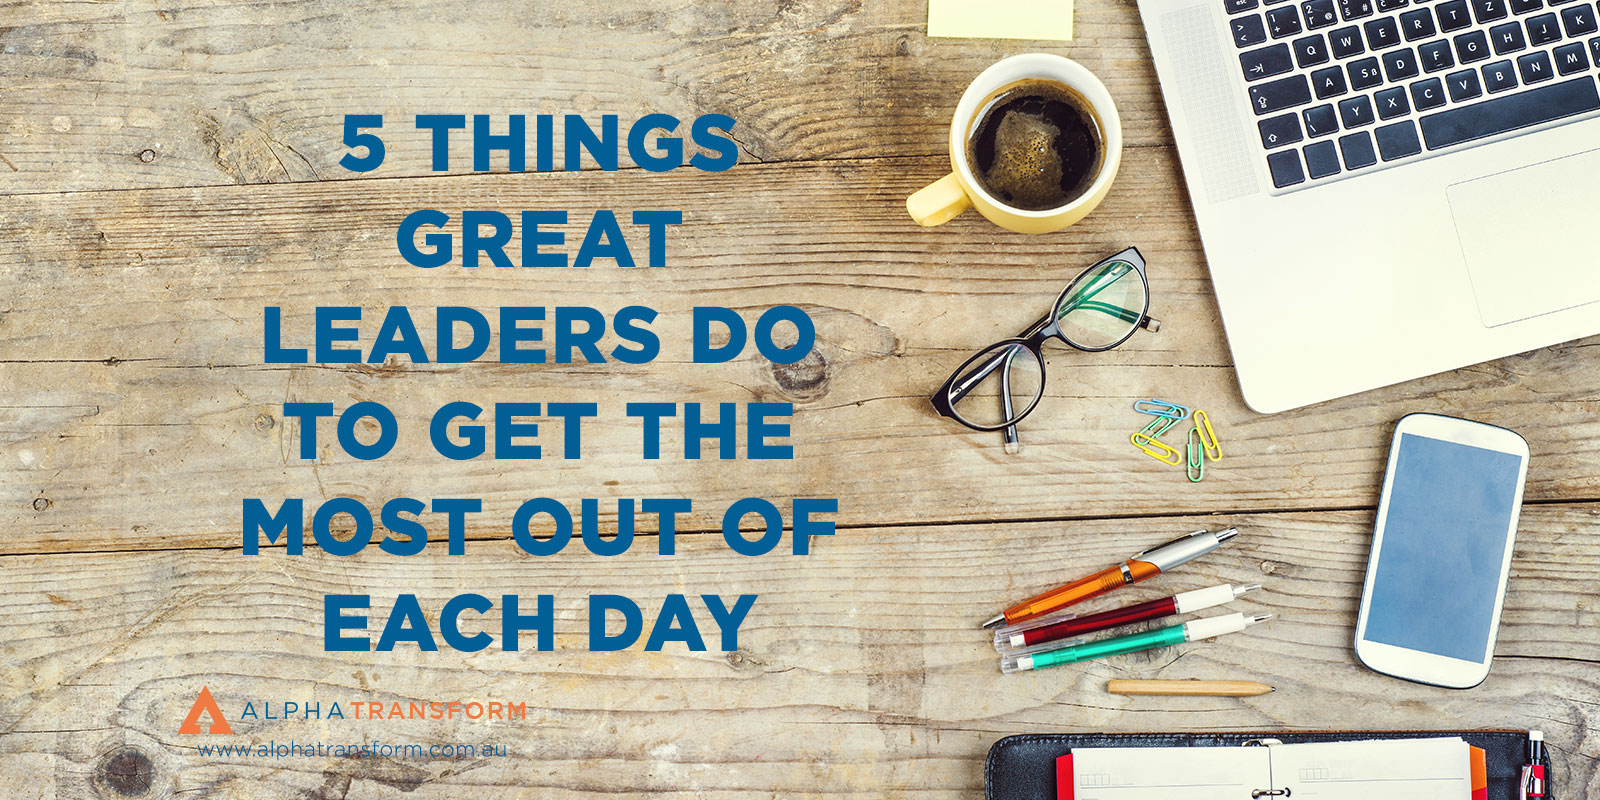 5 things great leaders do to get the most out of each day